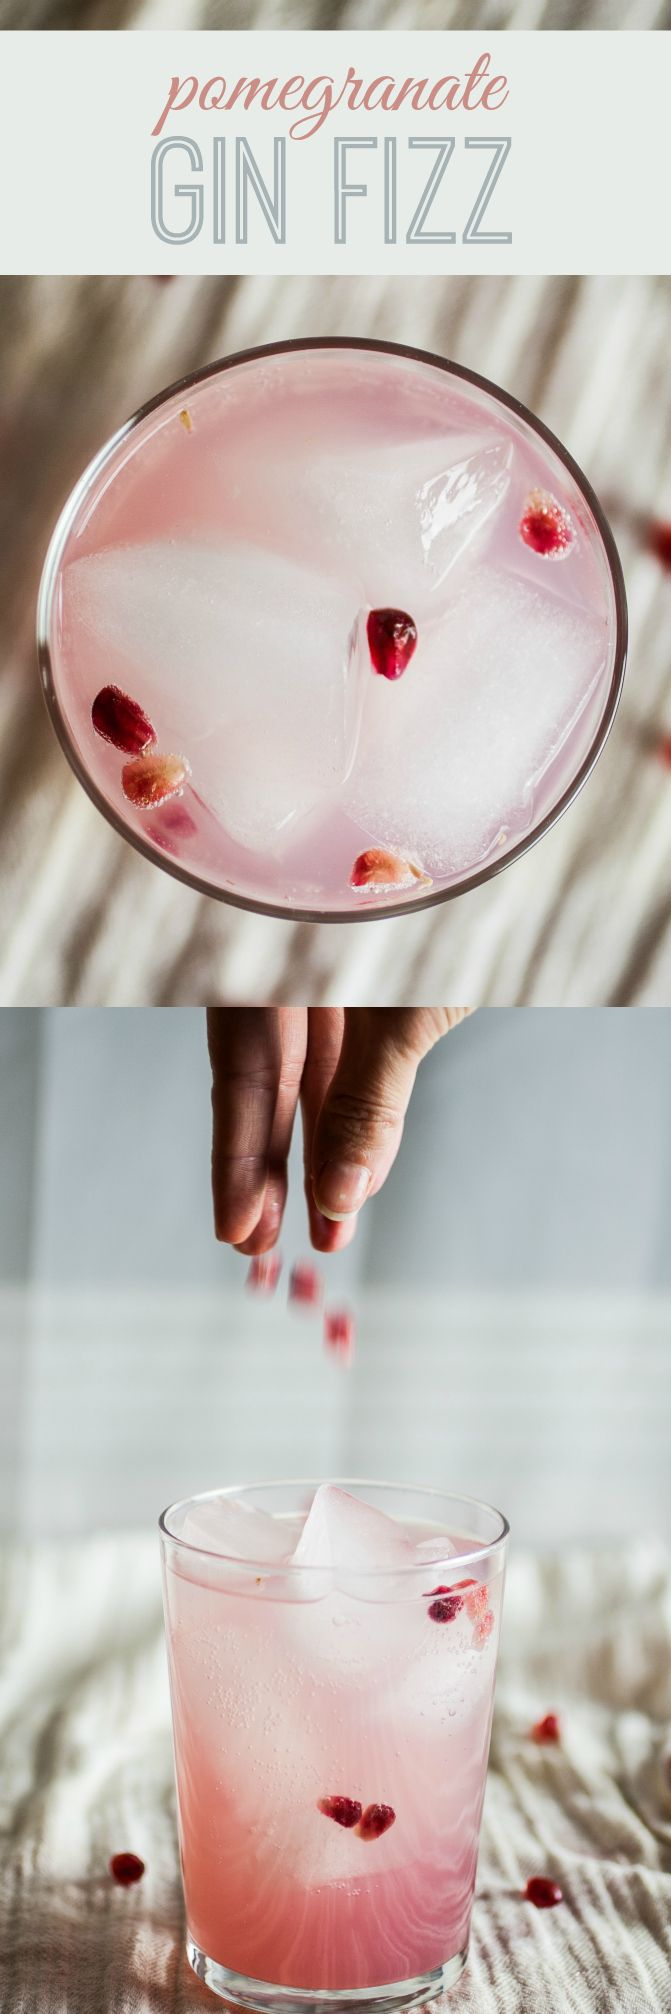 Pomegranate Gin Fizz by produceonparade: Blended with fresh pomegranate seeds and a floral gin made from grapes. Topped with fuzzy water, this is the perfect lightly scented adult beverage to sip on. If you're not a big hard alcohol fan, this is probably right up your alley. #Cocktails #Gin_Fizz #Pomegranate